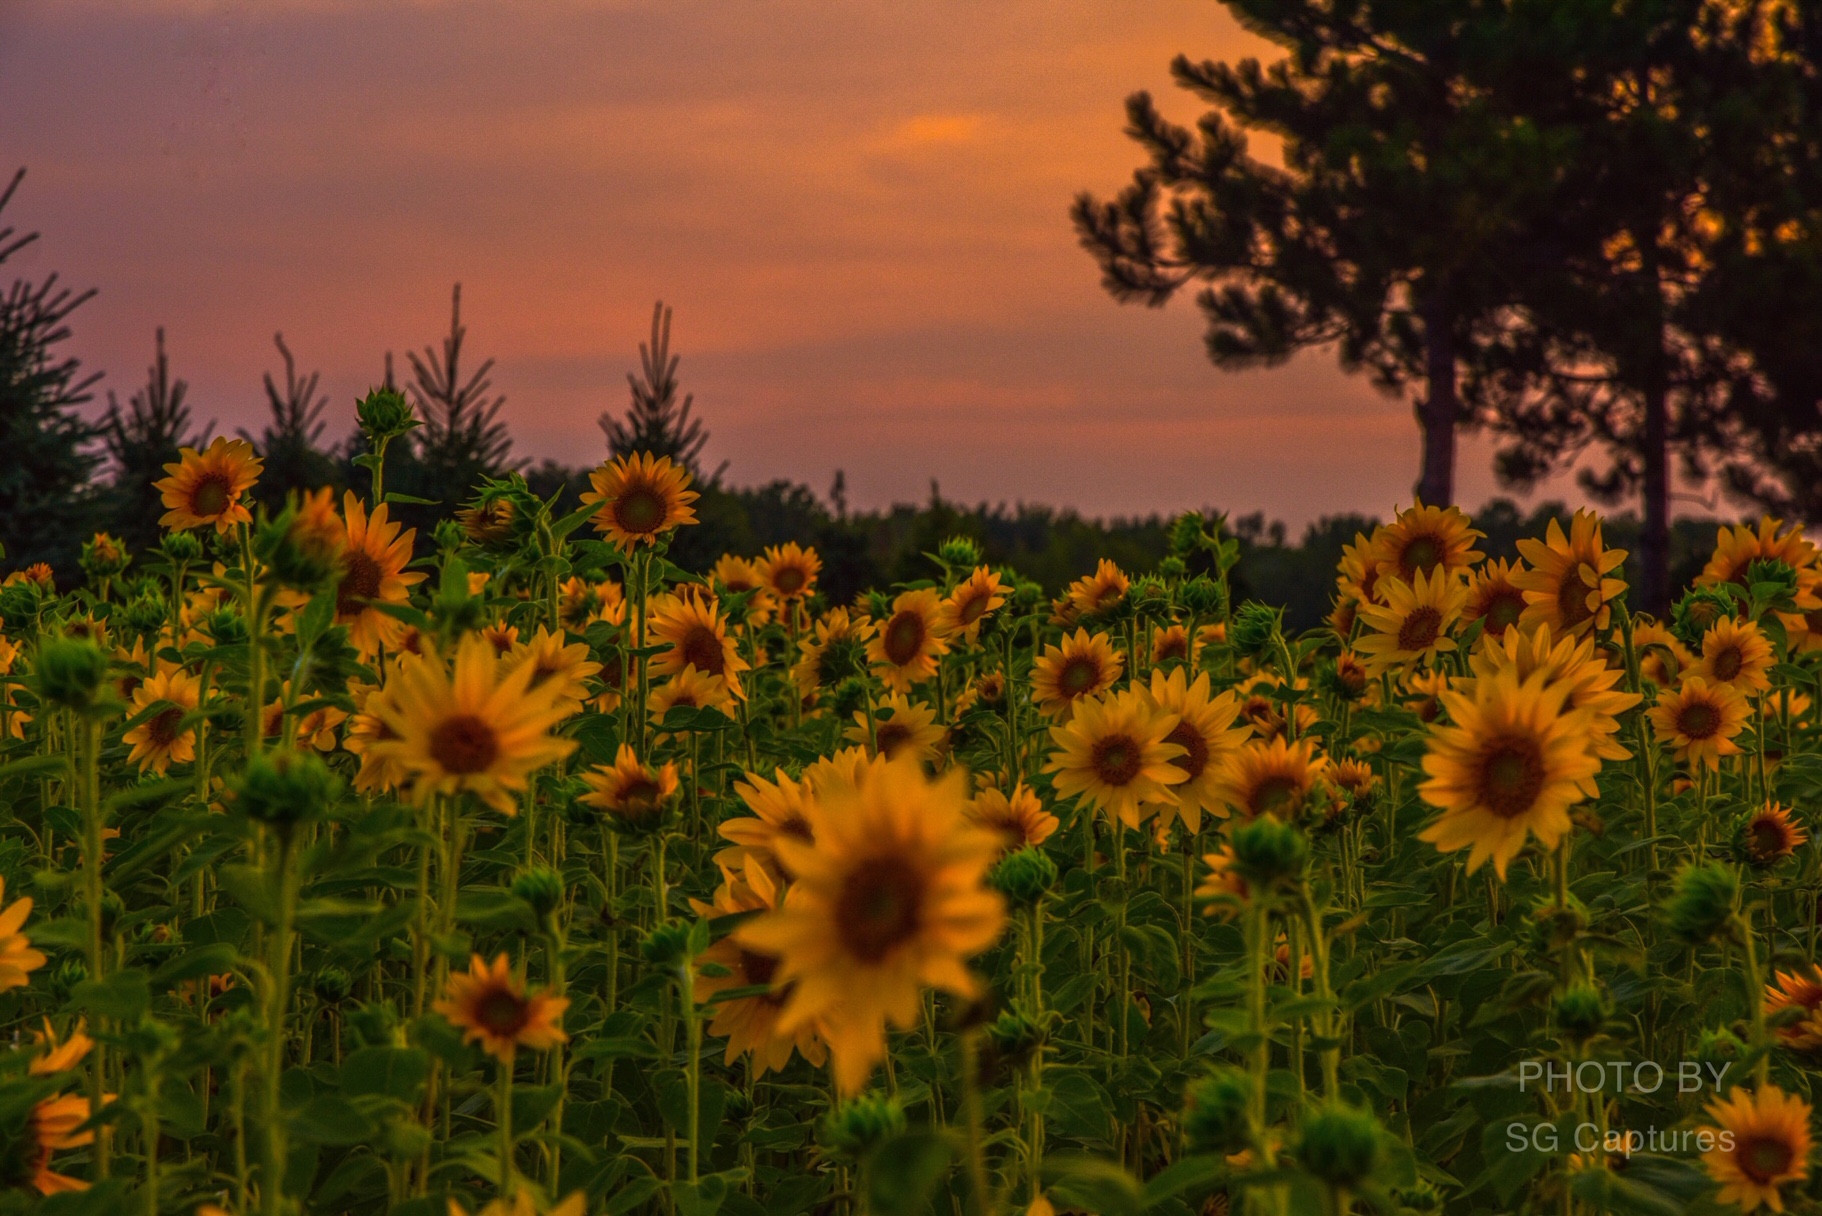 Bountiful Sunflowers